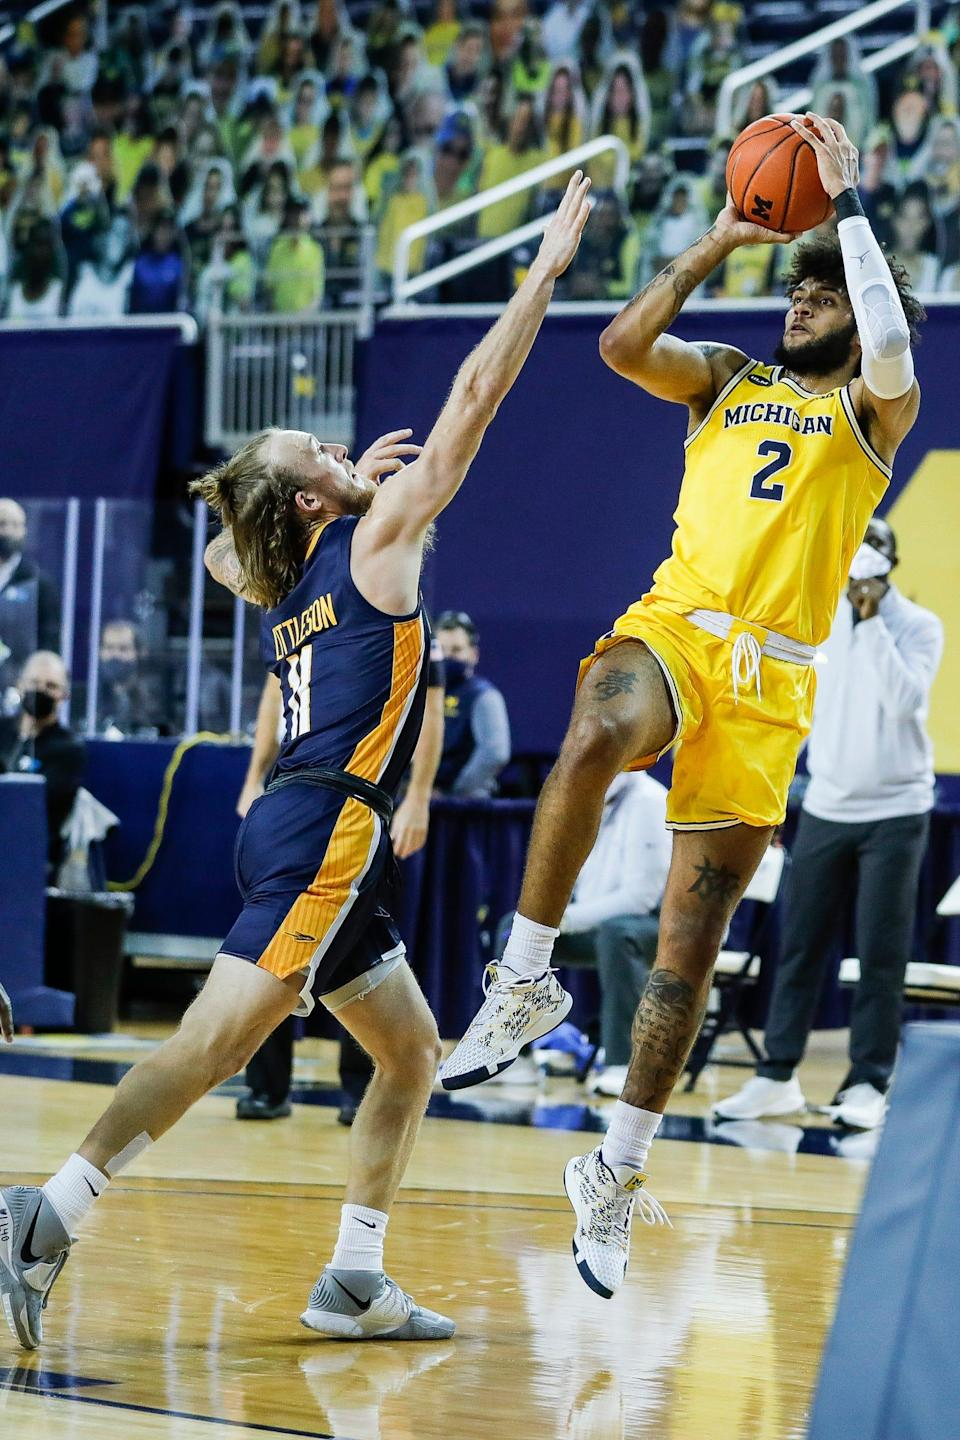 Michigan forward Isaiah Livers makes a jump shot against Toledo guard Spencer Littleson during the first half at Crisler Center in Ann Arbor, Wednesday, Dec. 9, 2020.